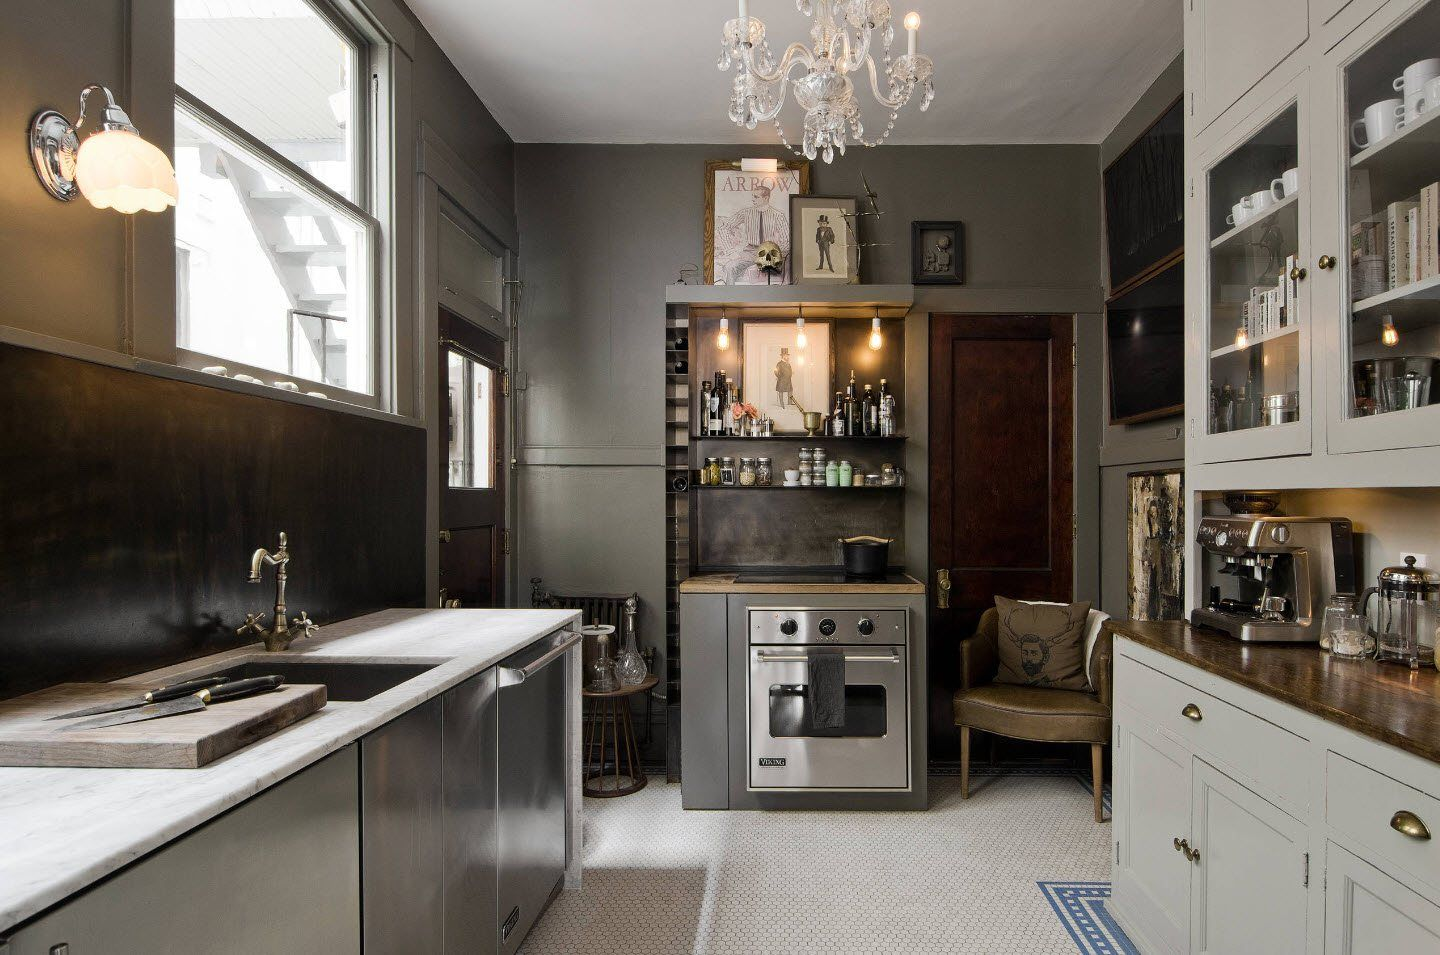 120 Square Feet Kitchen Interior Design Ideas with Photos. Noble silver surafces in the Classic atmosphere with crystal chandelier